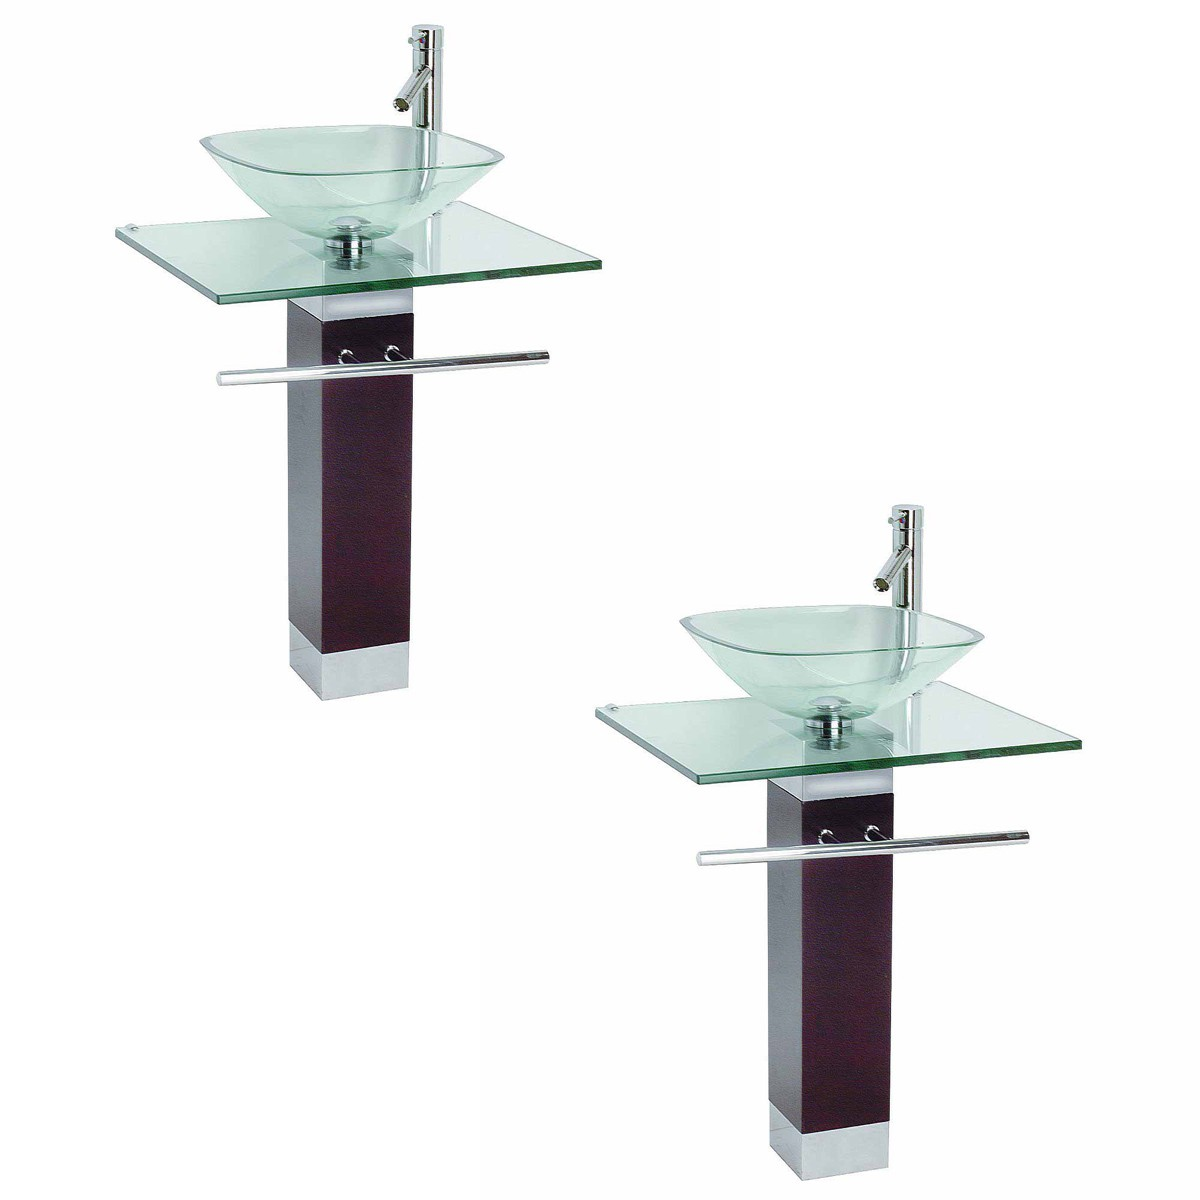 Charmant ... U003cPREu003e2 Tempered Glass Pedestal Sink Chrome Faucet Towel Bar And Drain  Combo Pack ...